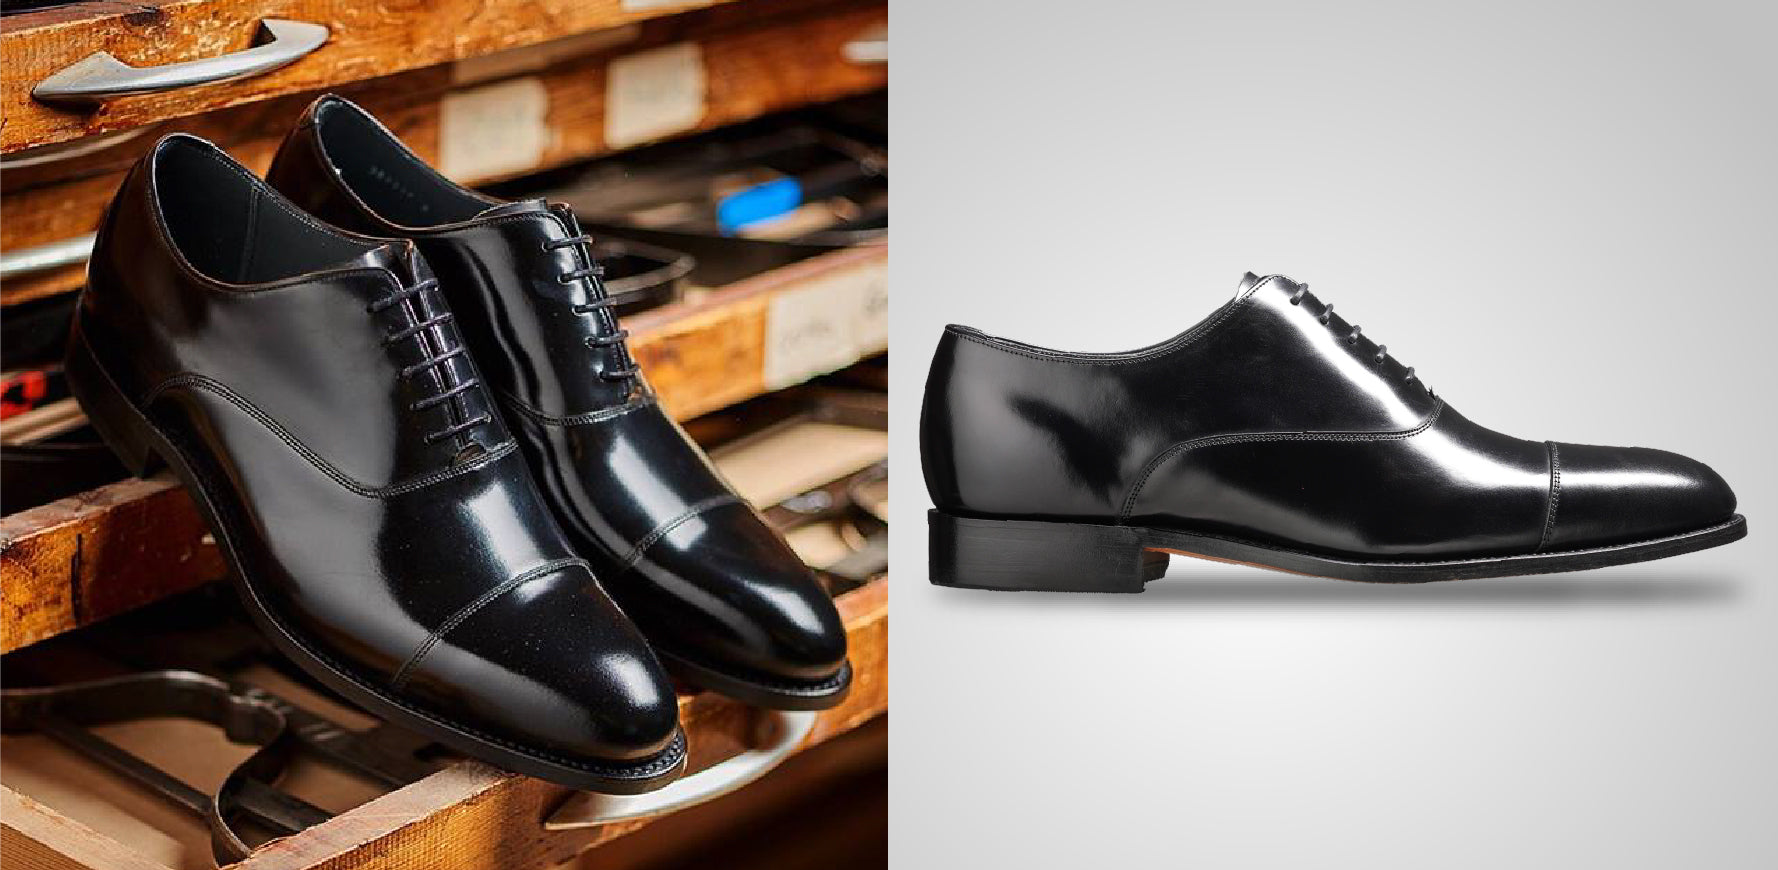 Winsford - Men's Handmade Black Leather Oxford Shoes By Barker